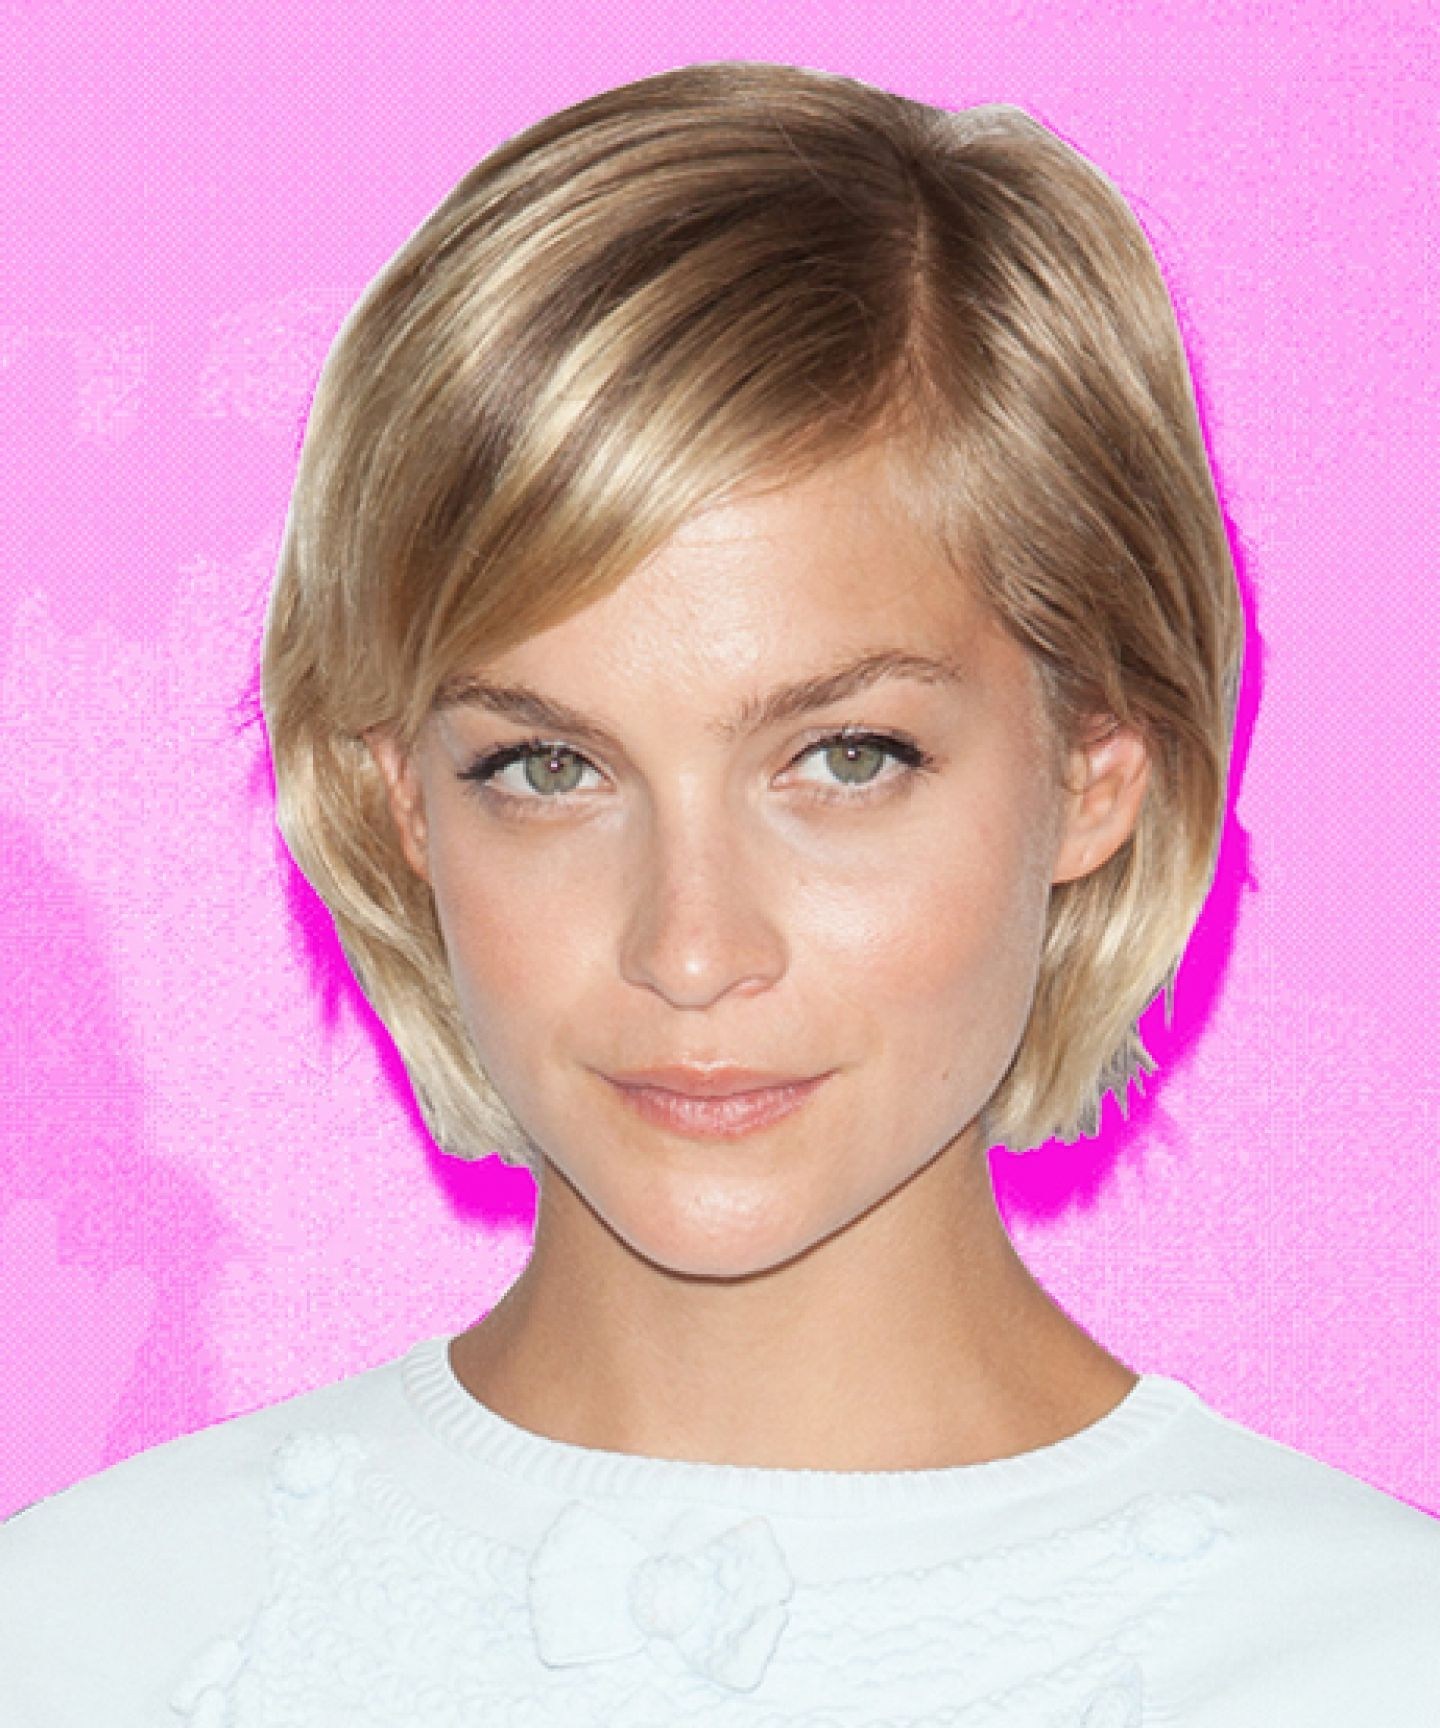 new fall hairstyles — edgy, pretty cuts in 2019 | hair